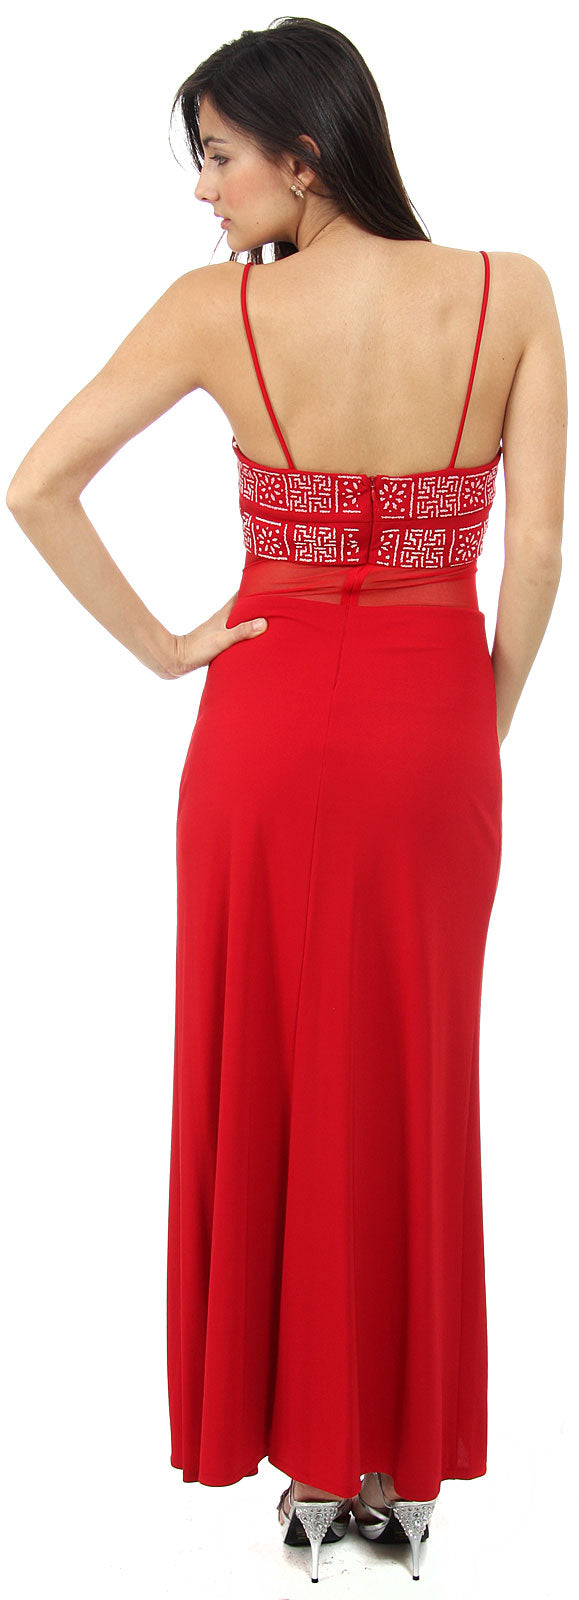 Back image of Spaghetti Strap Beaded Design Formal Dress